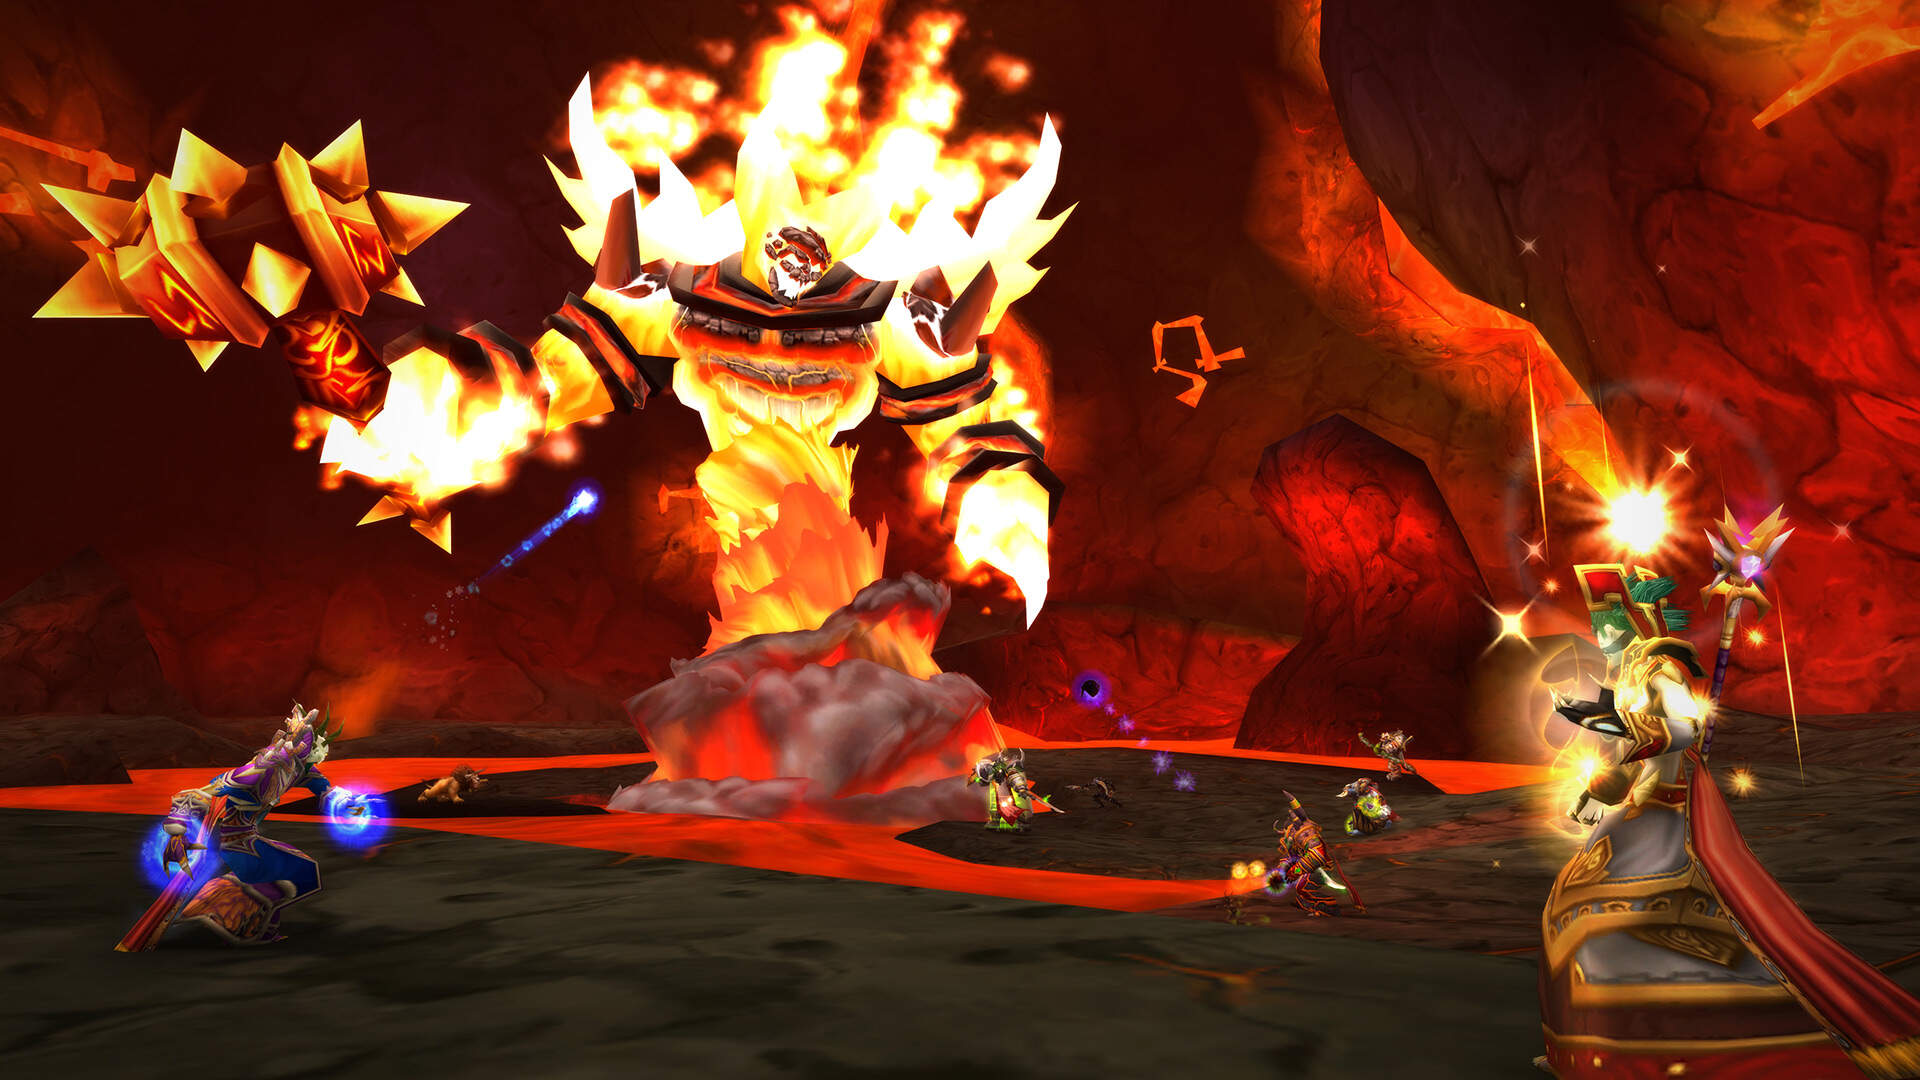 WoW Classic Launching This August, Closed Beta Starting This Week